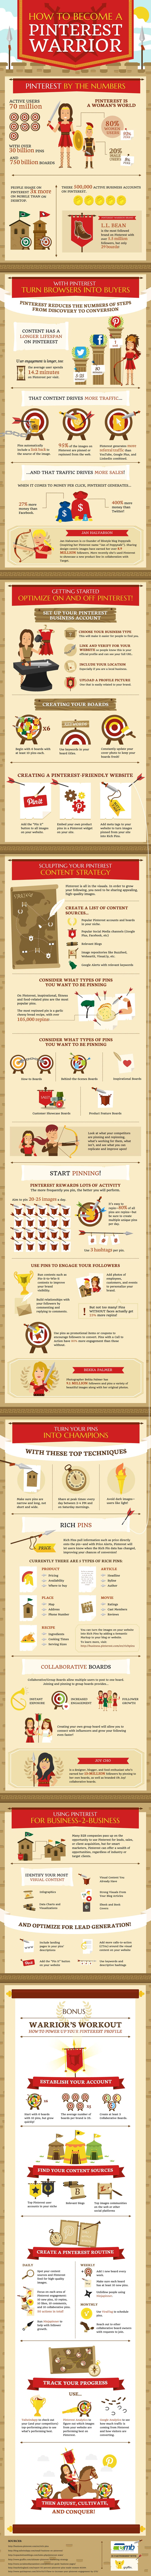 become a pinterest warrior infographic